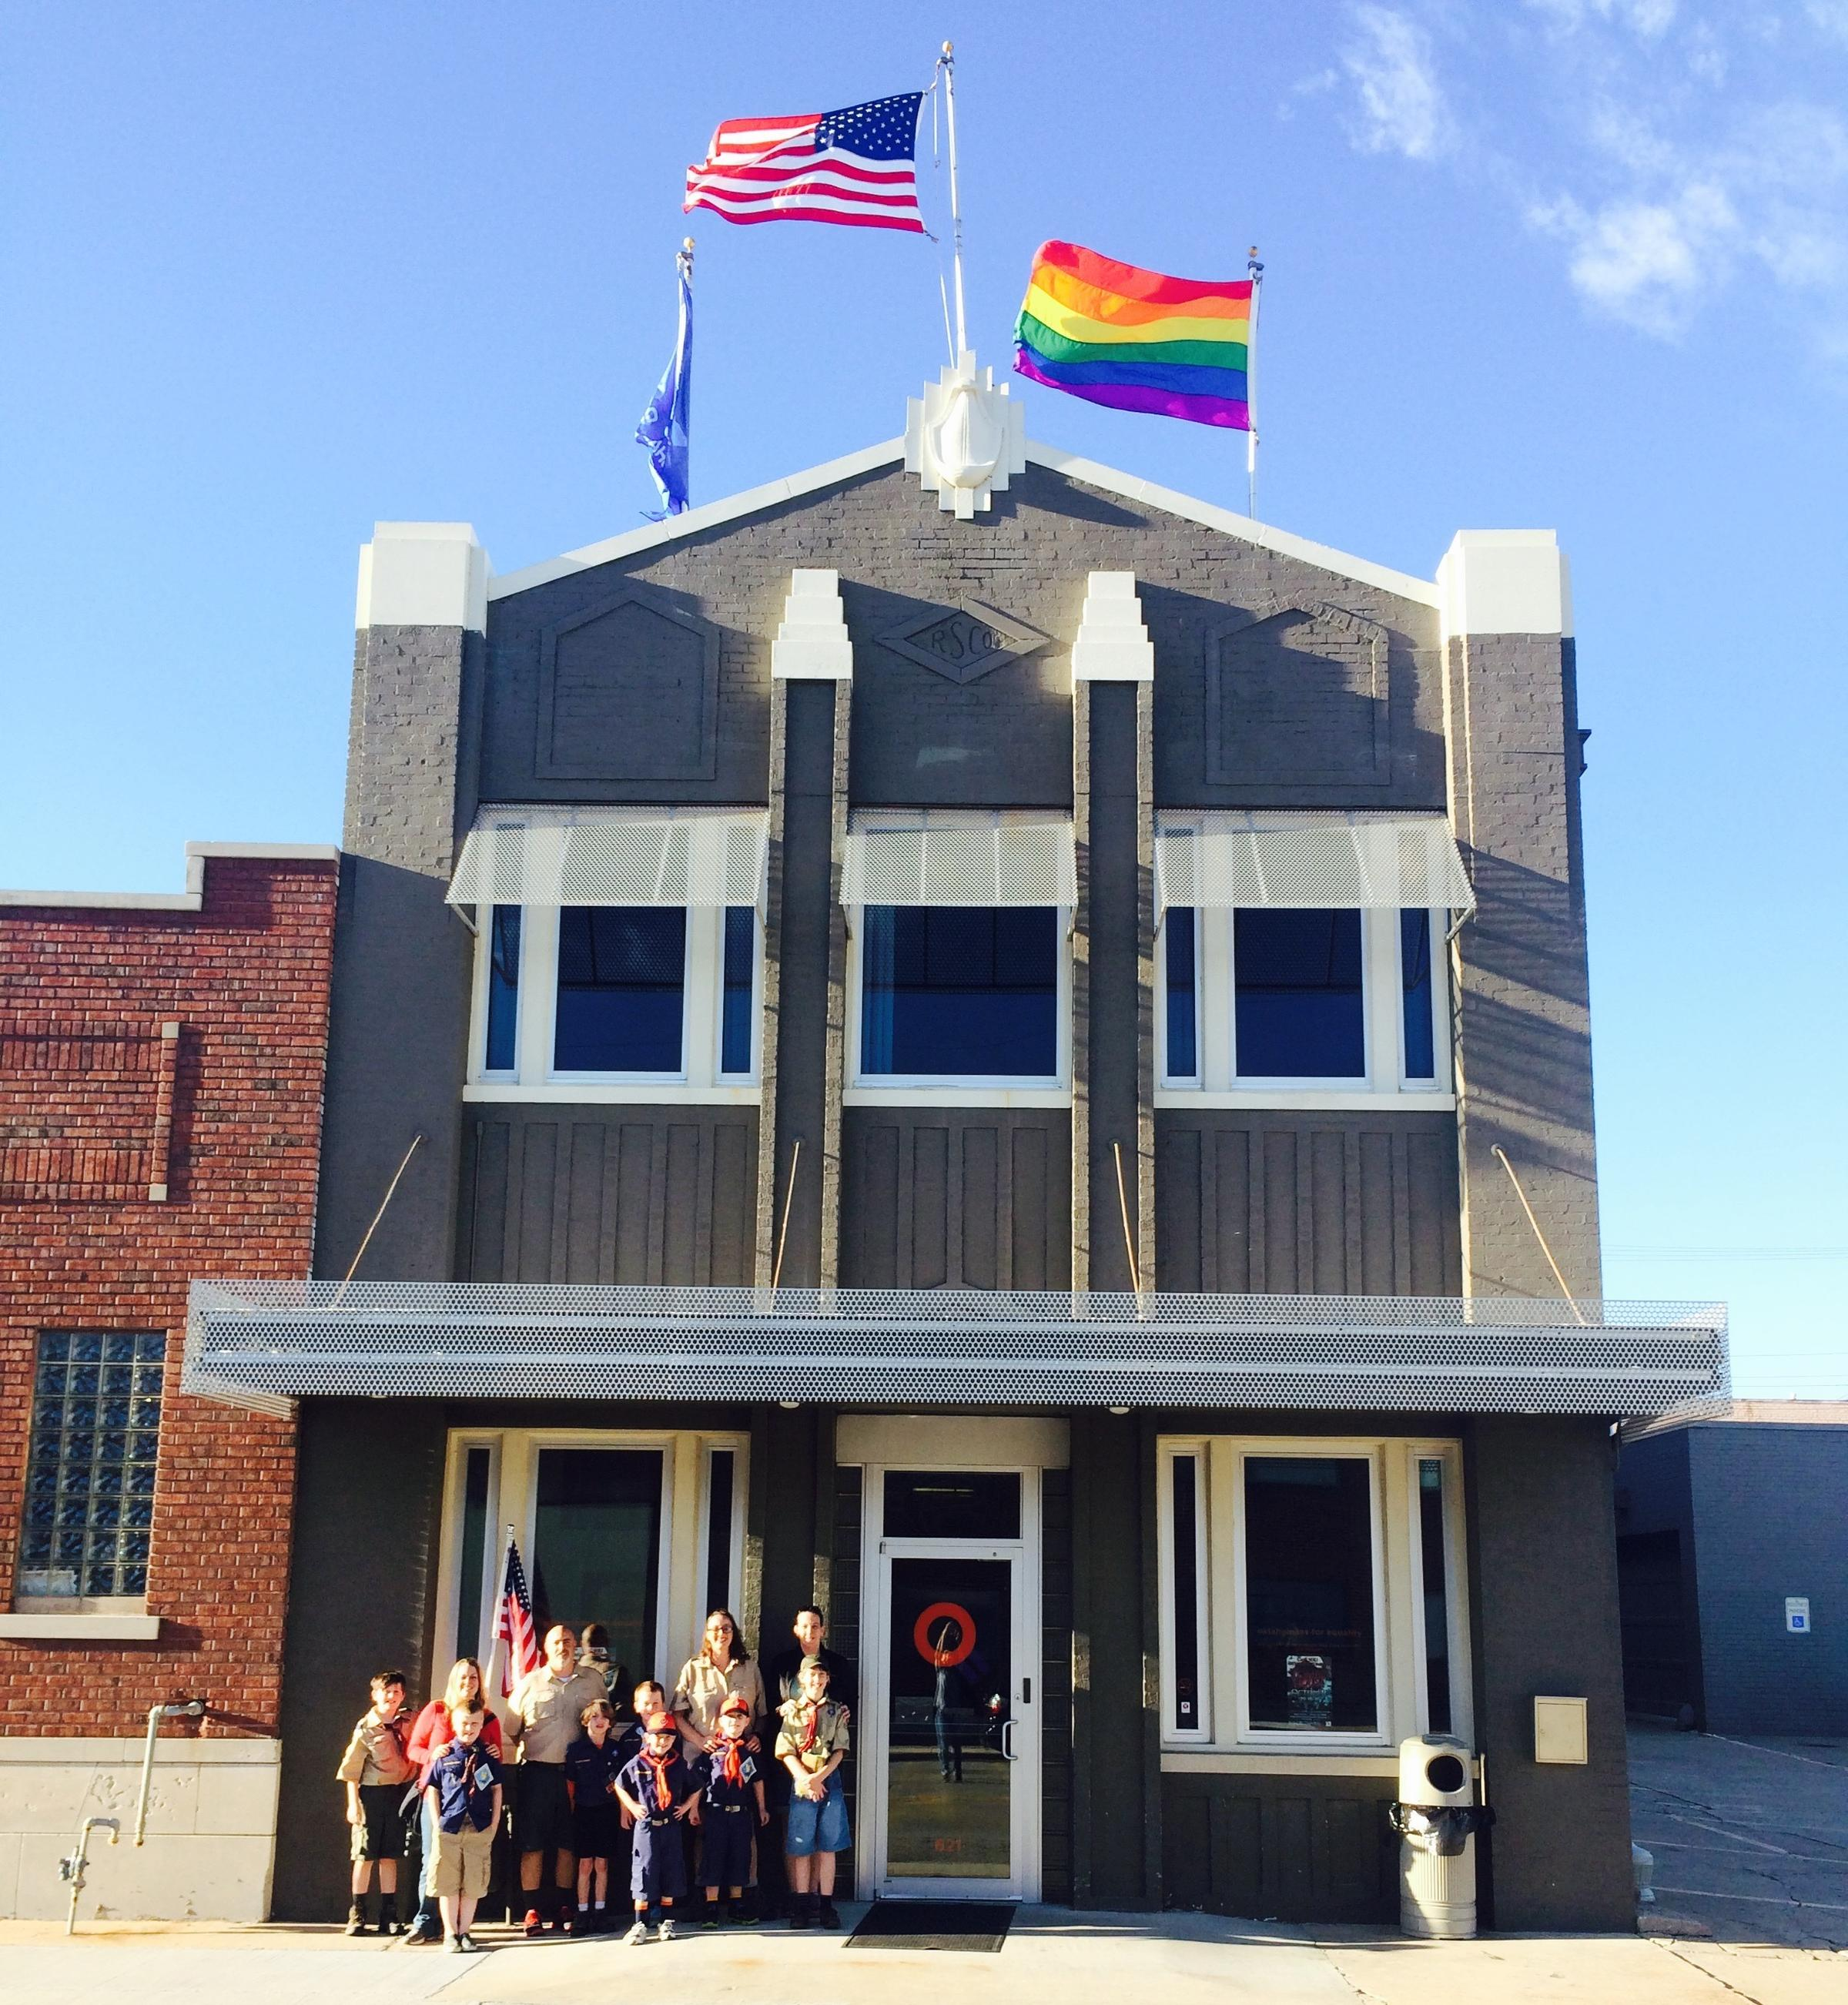 A rainbow flag flies above the Oklahomans for Equality community center in Tulsa Okla. where Andy Grimes\u0027 Cub Scout pack gathers for meetings. & Boy Scouts Open Doors To Gay Leaders \u2014 But They\u0027re In No Rush | KUNR